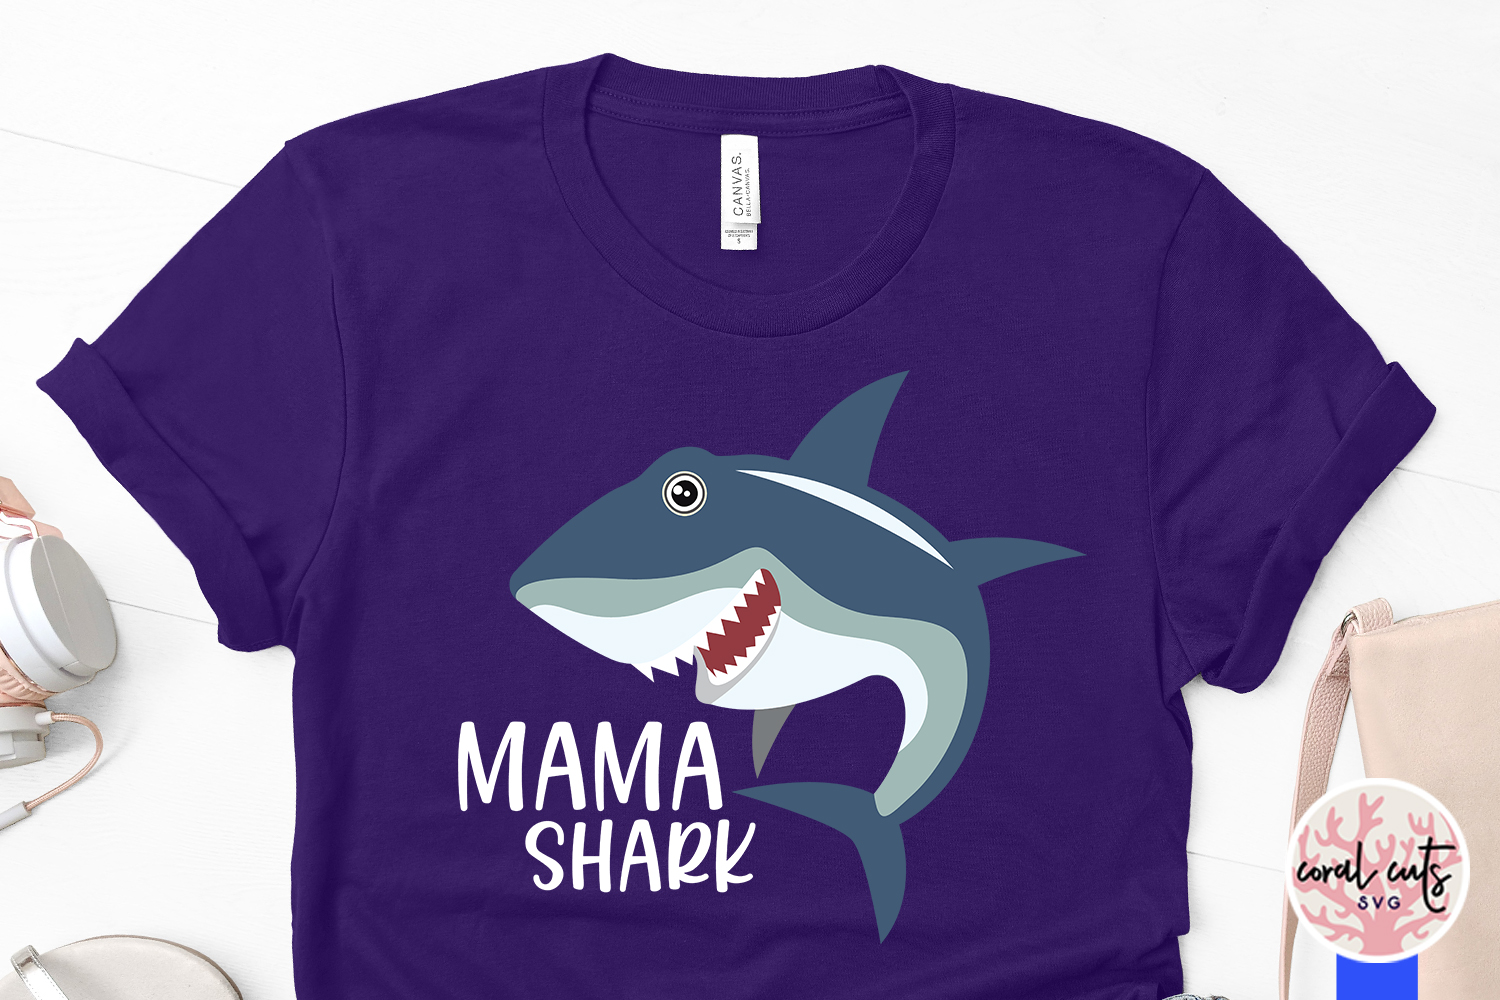 Mama shark - Mother SVG EPS DXF PNG Cutting File example image 3